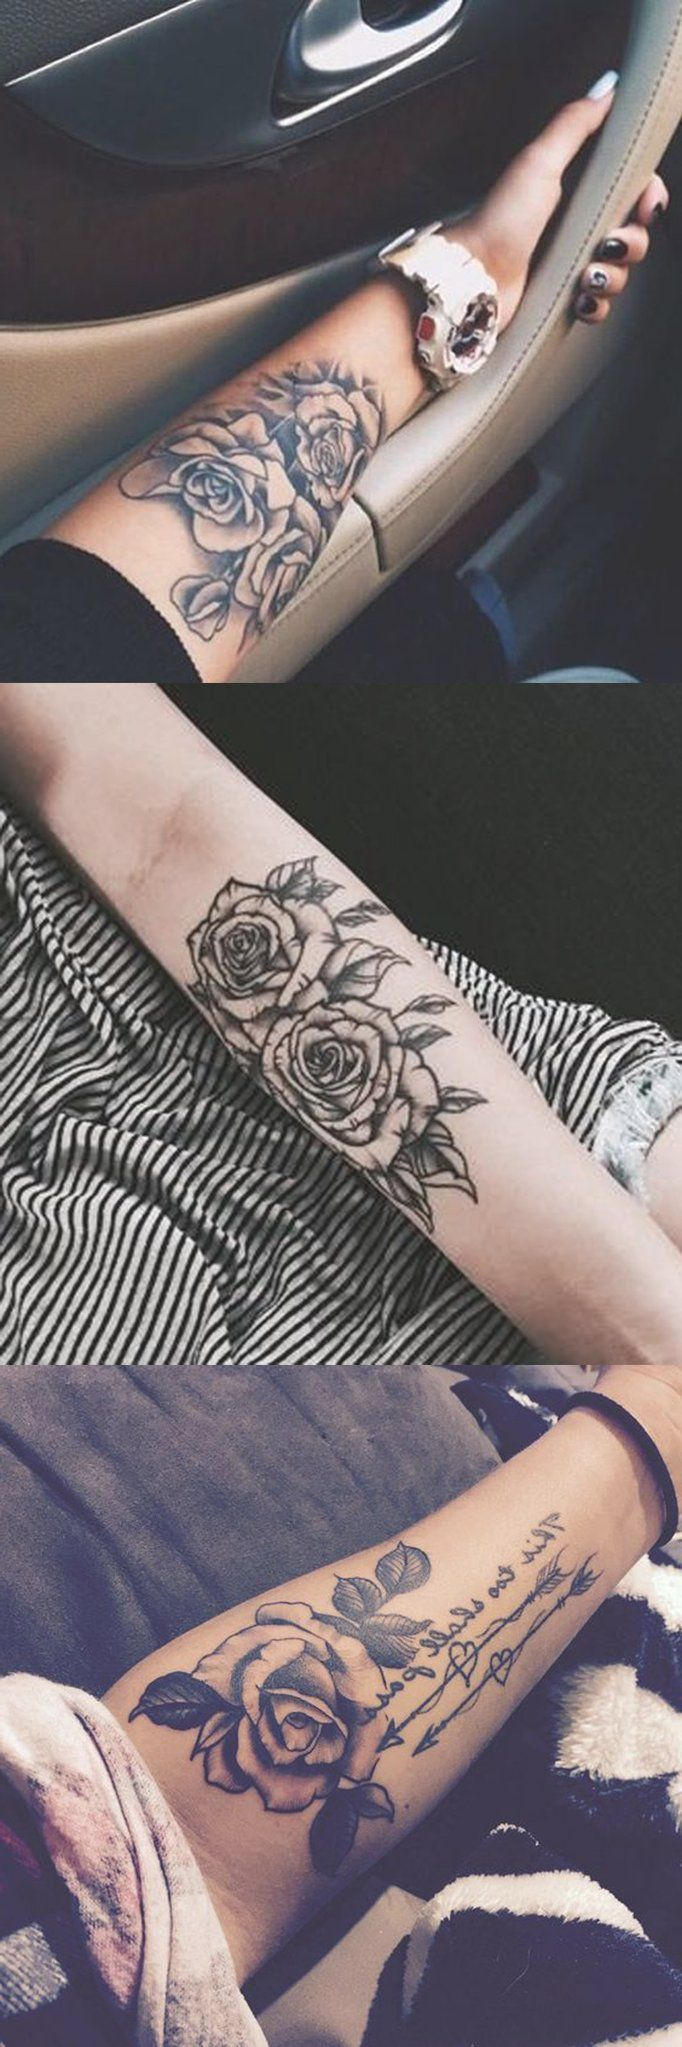 Black rose forearm tattoo ideas girly realistic floral flower arm